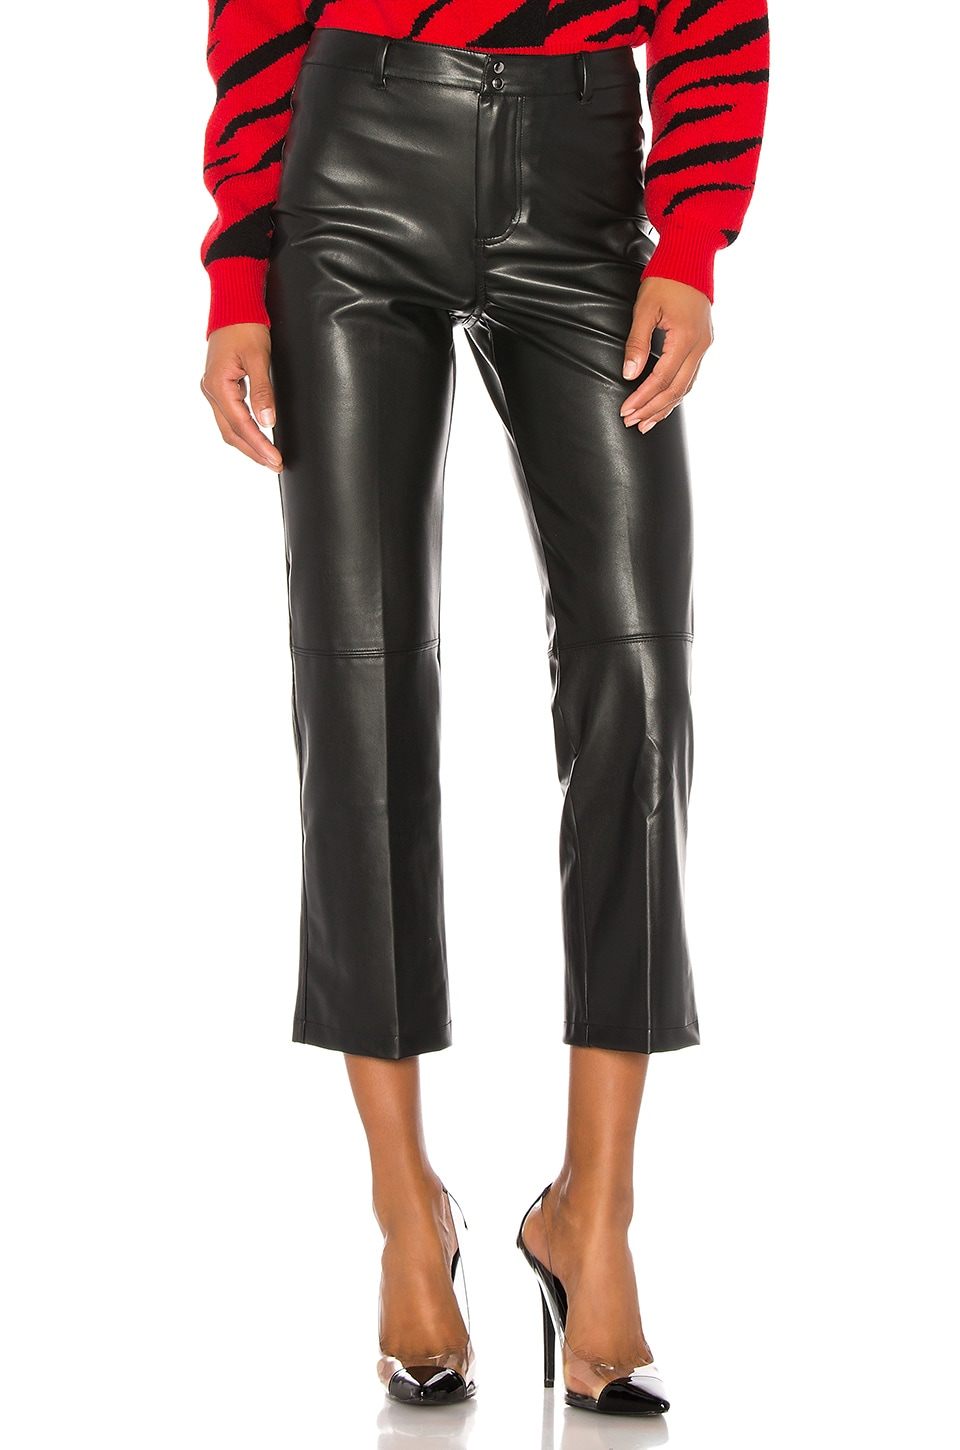 David Lerner Vegan Leather High Rise Straight Leg Pant in Black